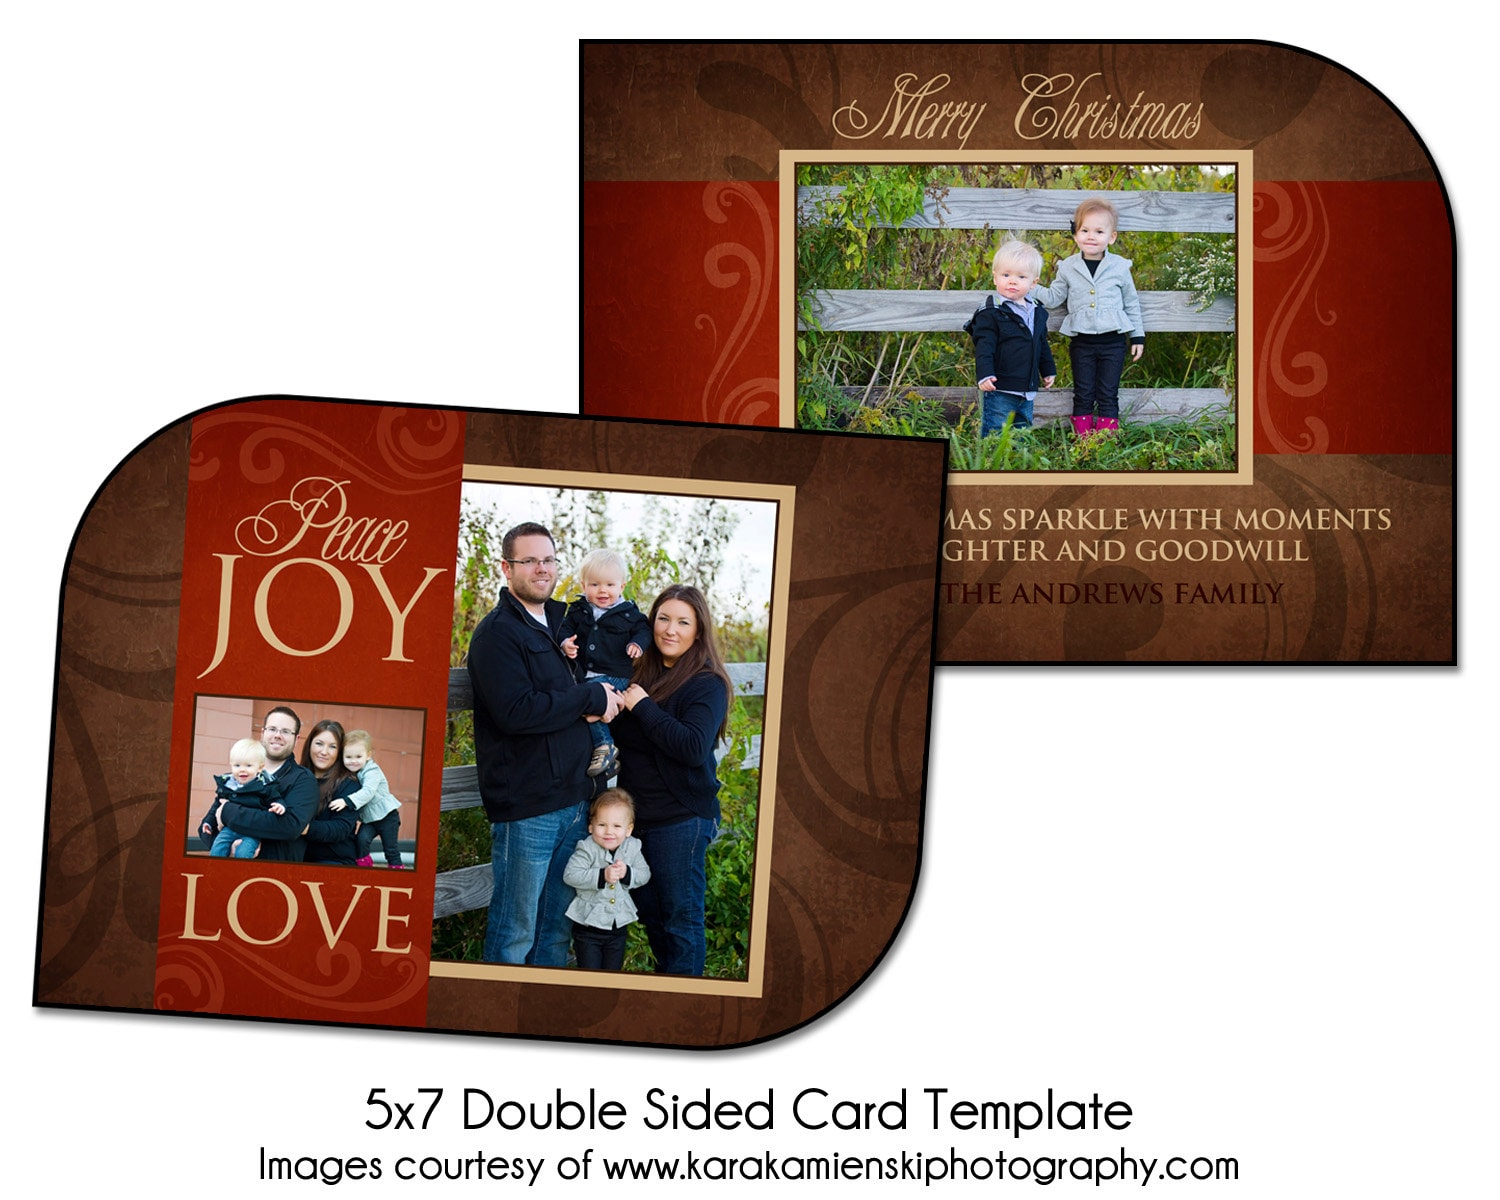 5x7 postcard mailing template - christmas card template family joy 5x7 double sided card